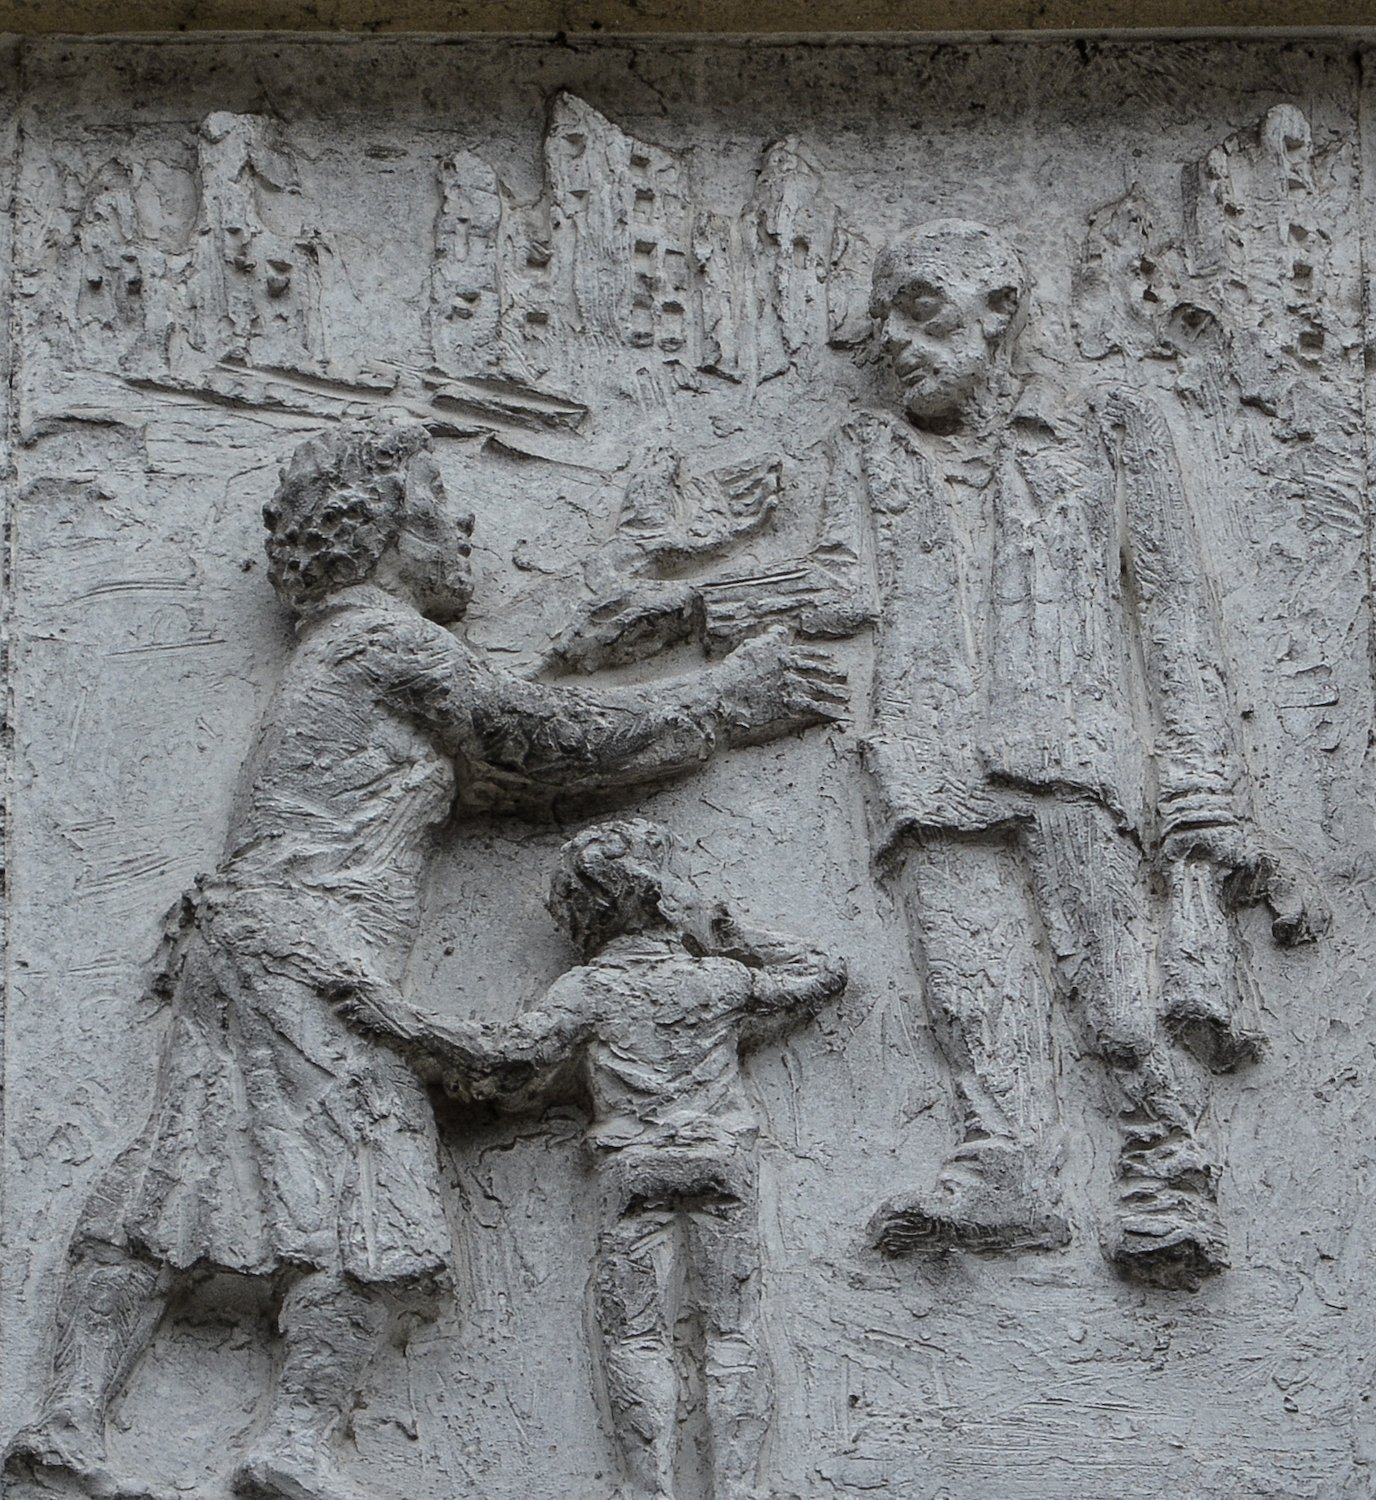 survivor is united family fries der sozialistischen Geschichte Berlins Gerhard Thieme socialist history of berlin relief frieze berlin germany socialsim communism east berlin east germany ddr